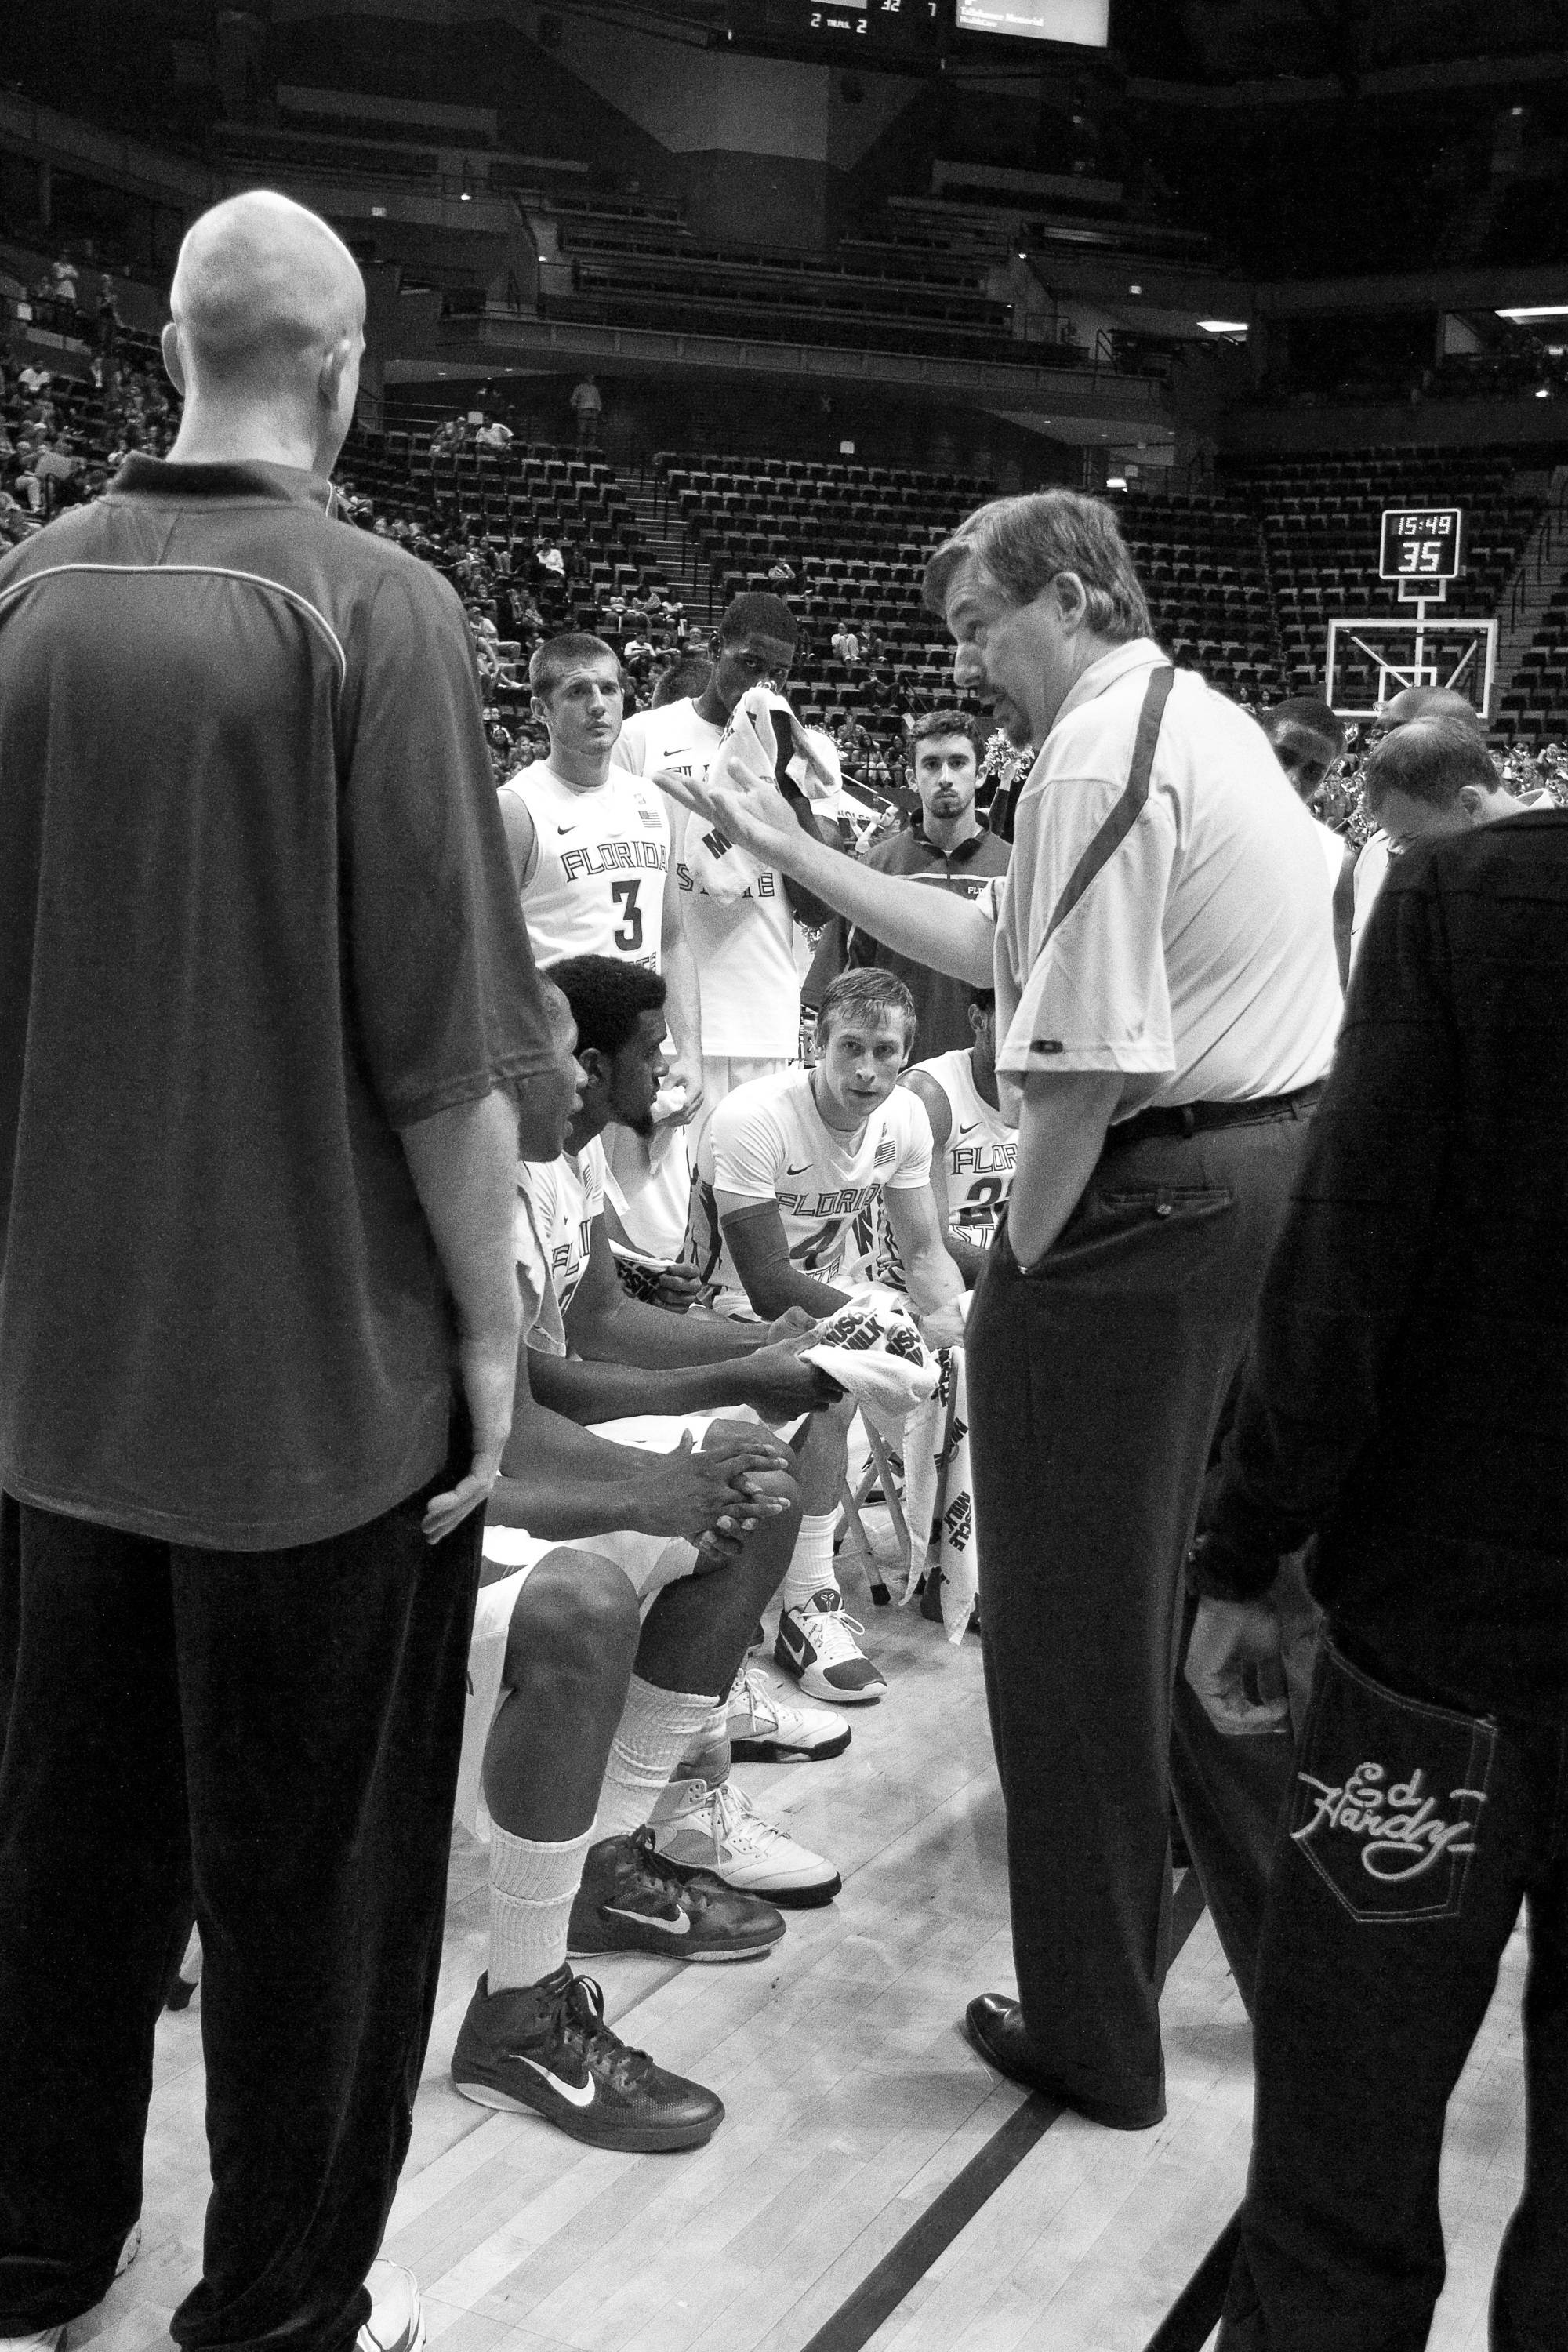 Team meets during a time out